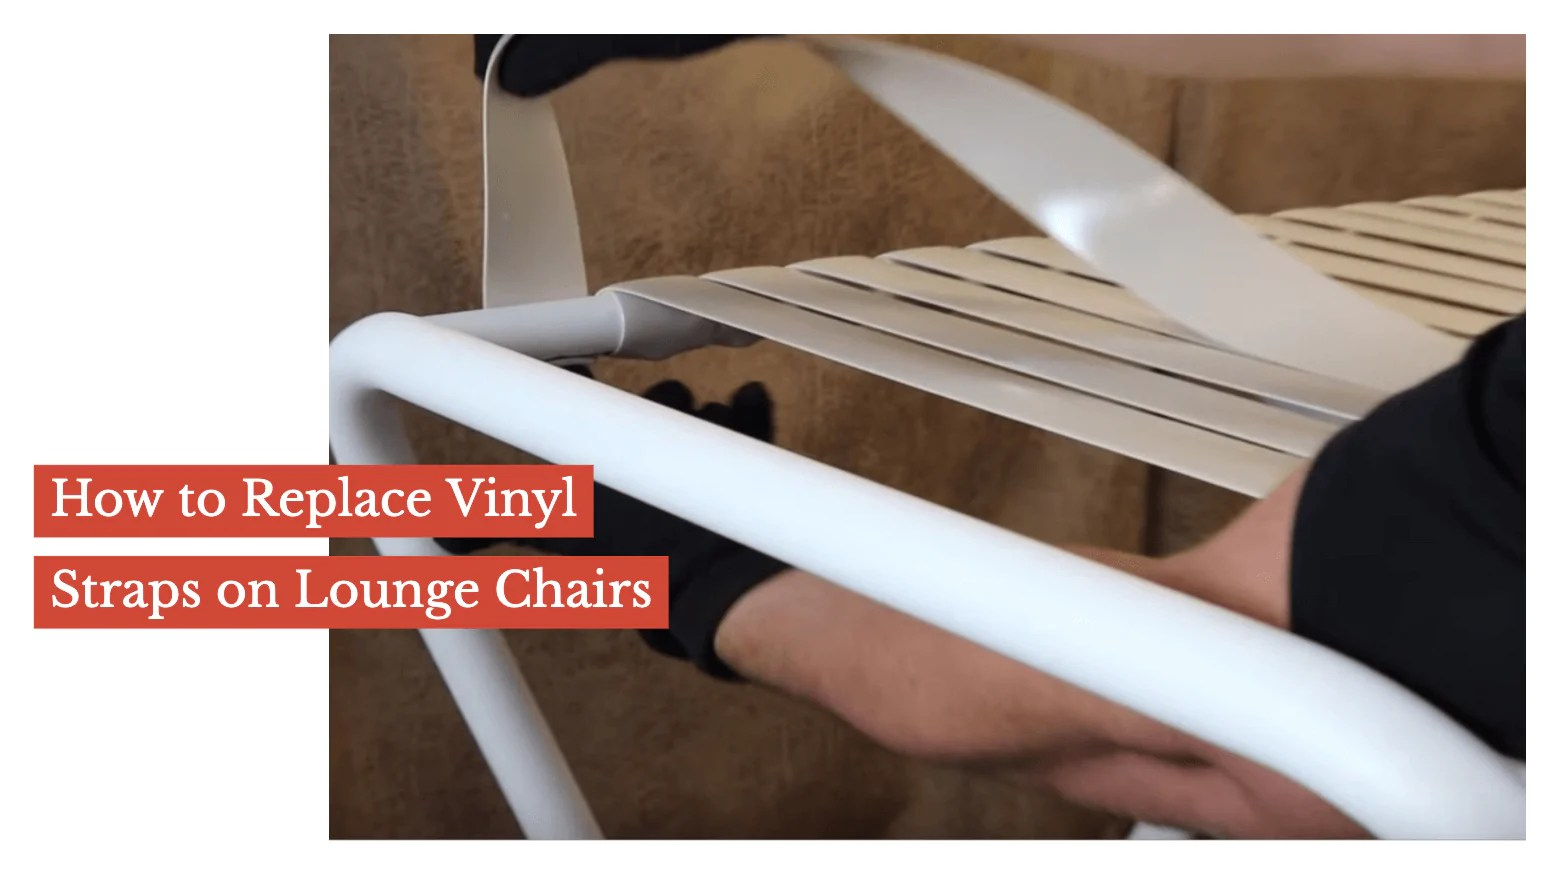 replace vinyl straps on lounge chairs